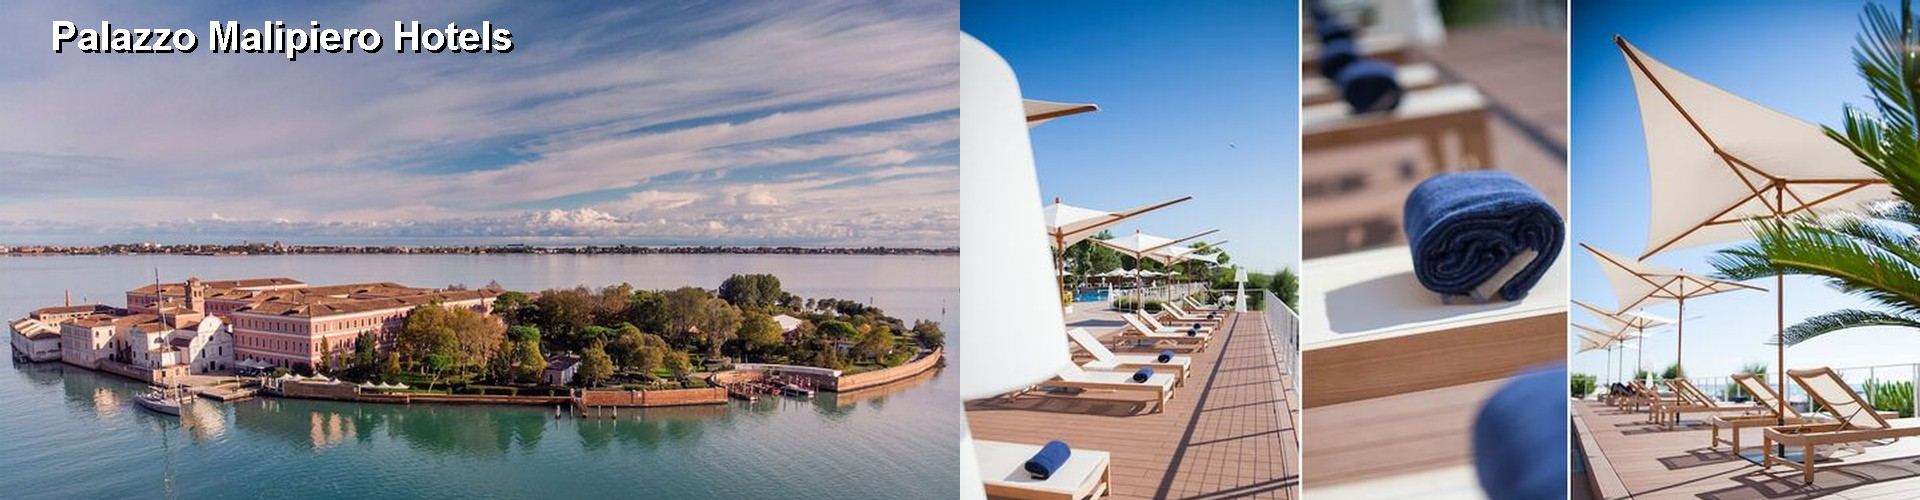 5 Best Hotels near Palazzo Malipiero